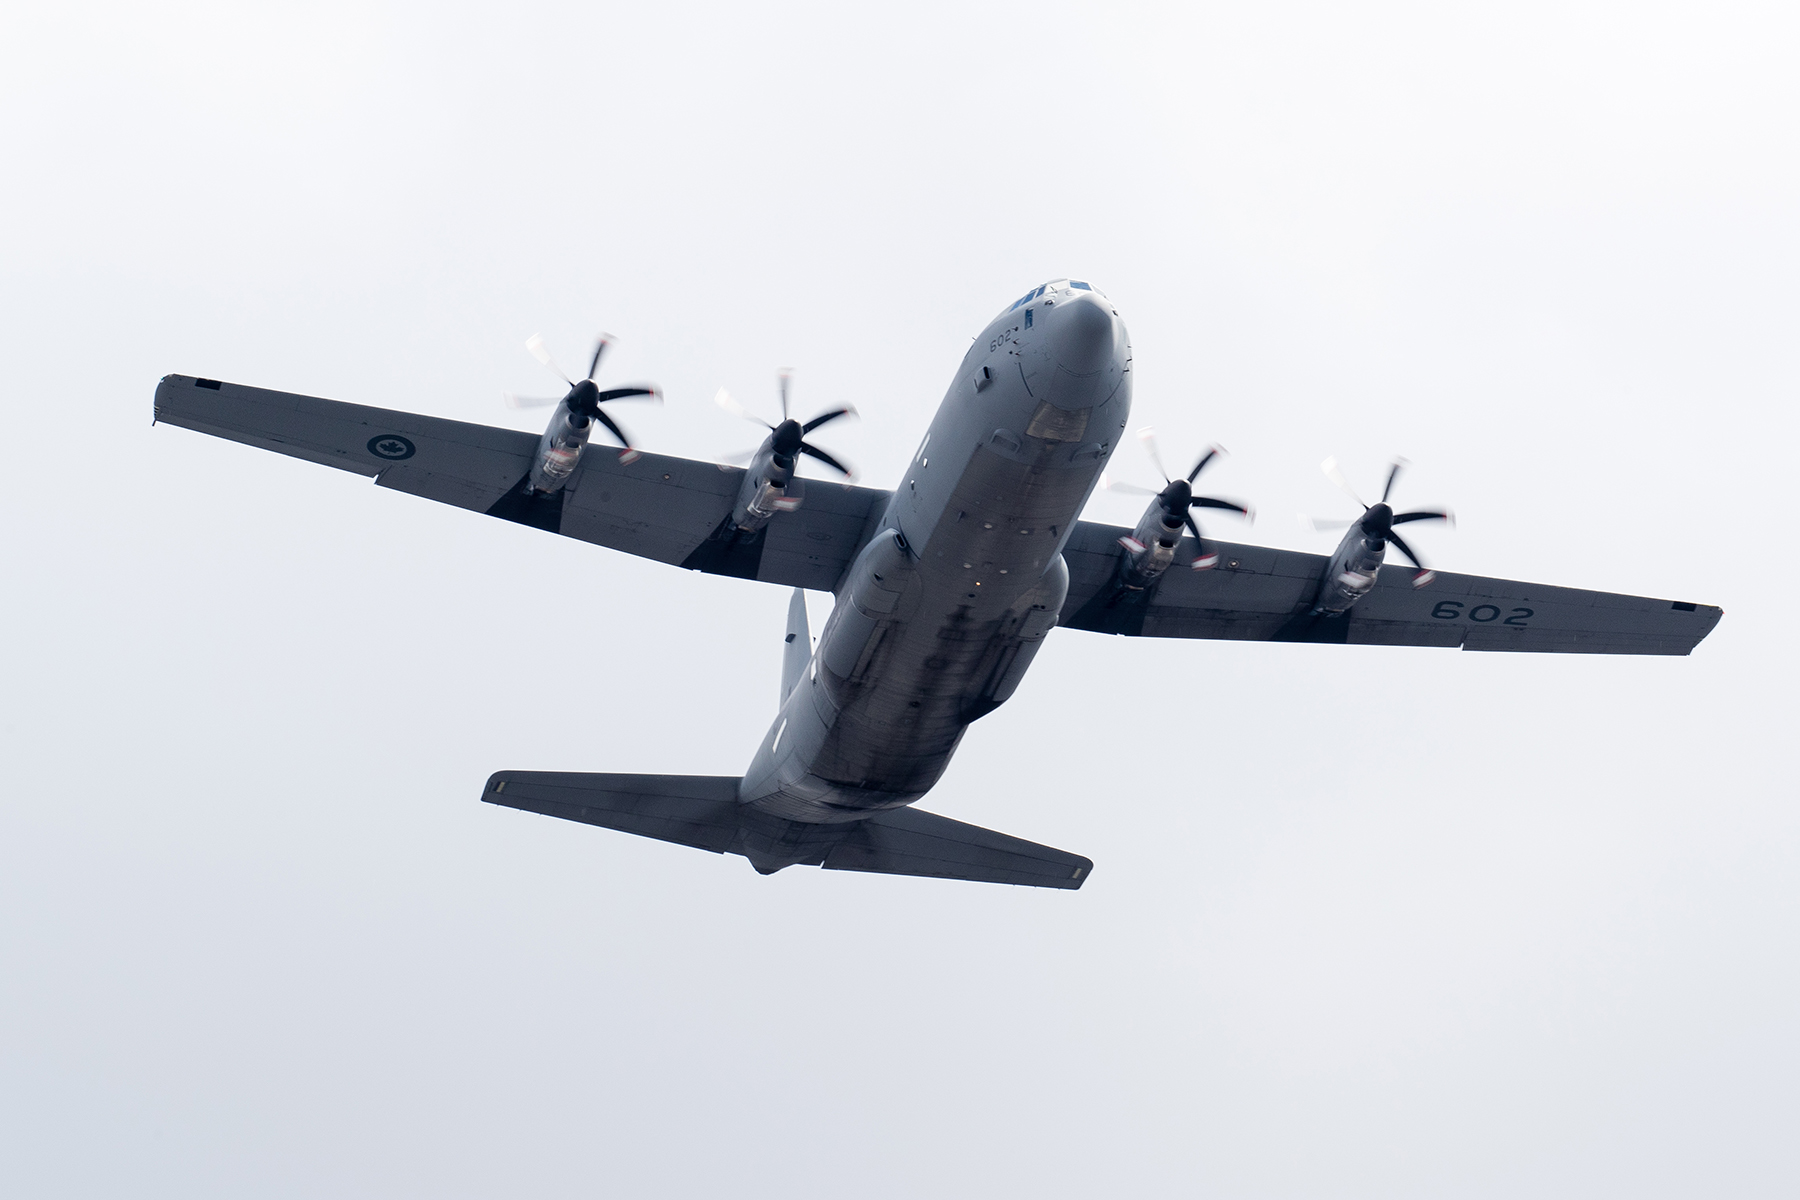 A CP-140 Aurora long-range patrol aircraft overflies Ottawa, Ontario, on July 2, 2017, in celebration of the 150th anniversary of Canada's confederation. The Aurora has been a mainstay of the RCAF fleet since early 1980; its command, control, communication, computer, intelligence, surveillance and reconnaissance capabilities make it an invaluable asset to the fleet. PHOTO: Patrick Cardinal